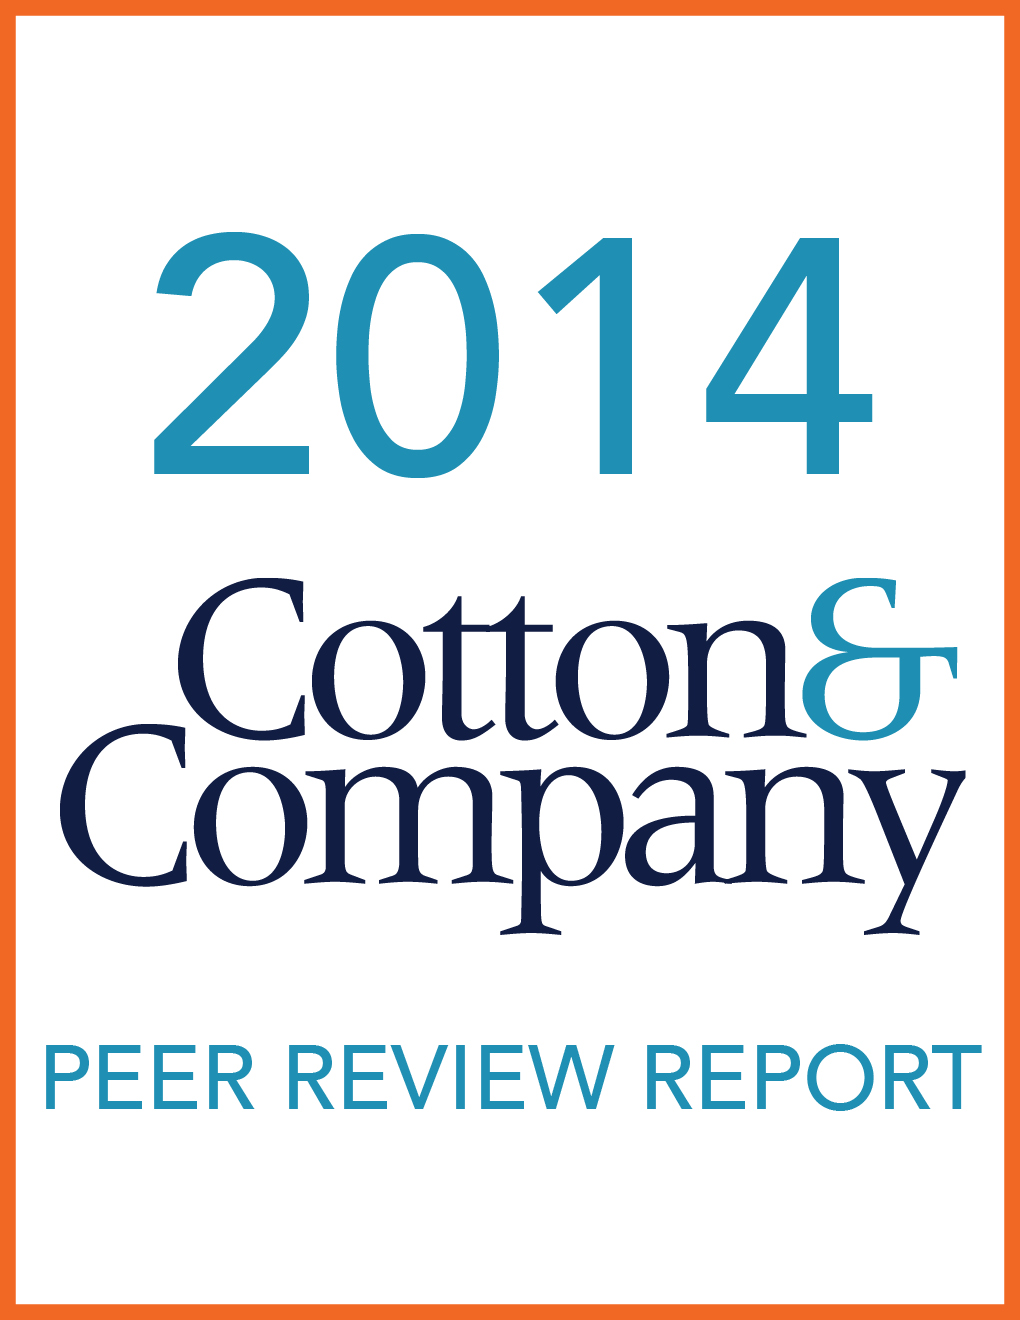 2014 Cotton & Company Peer Review Report